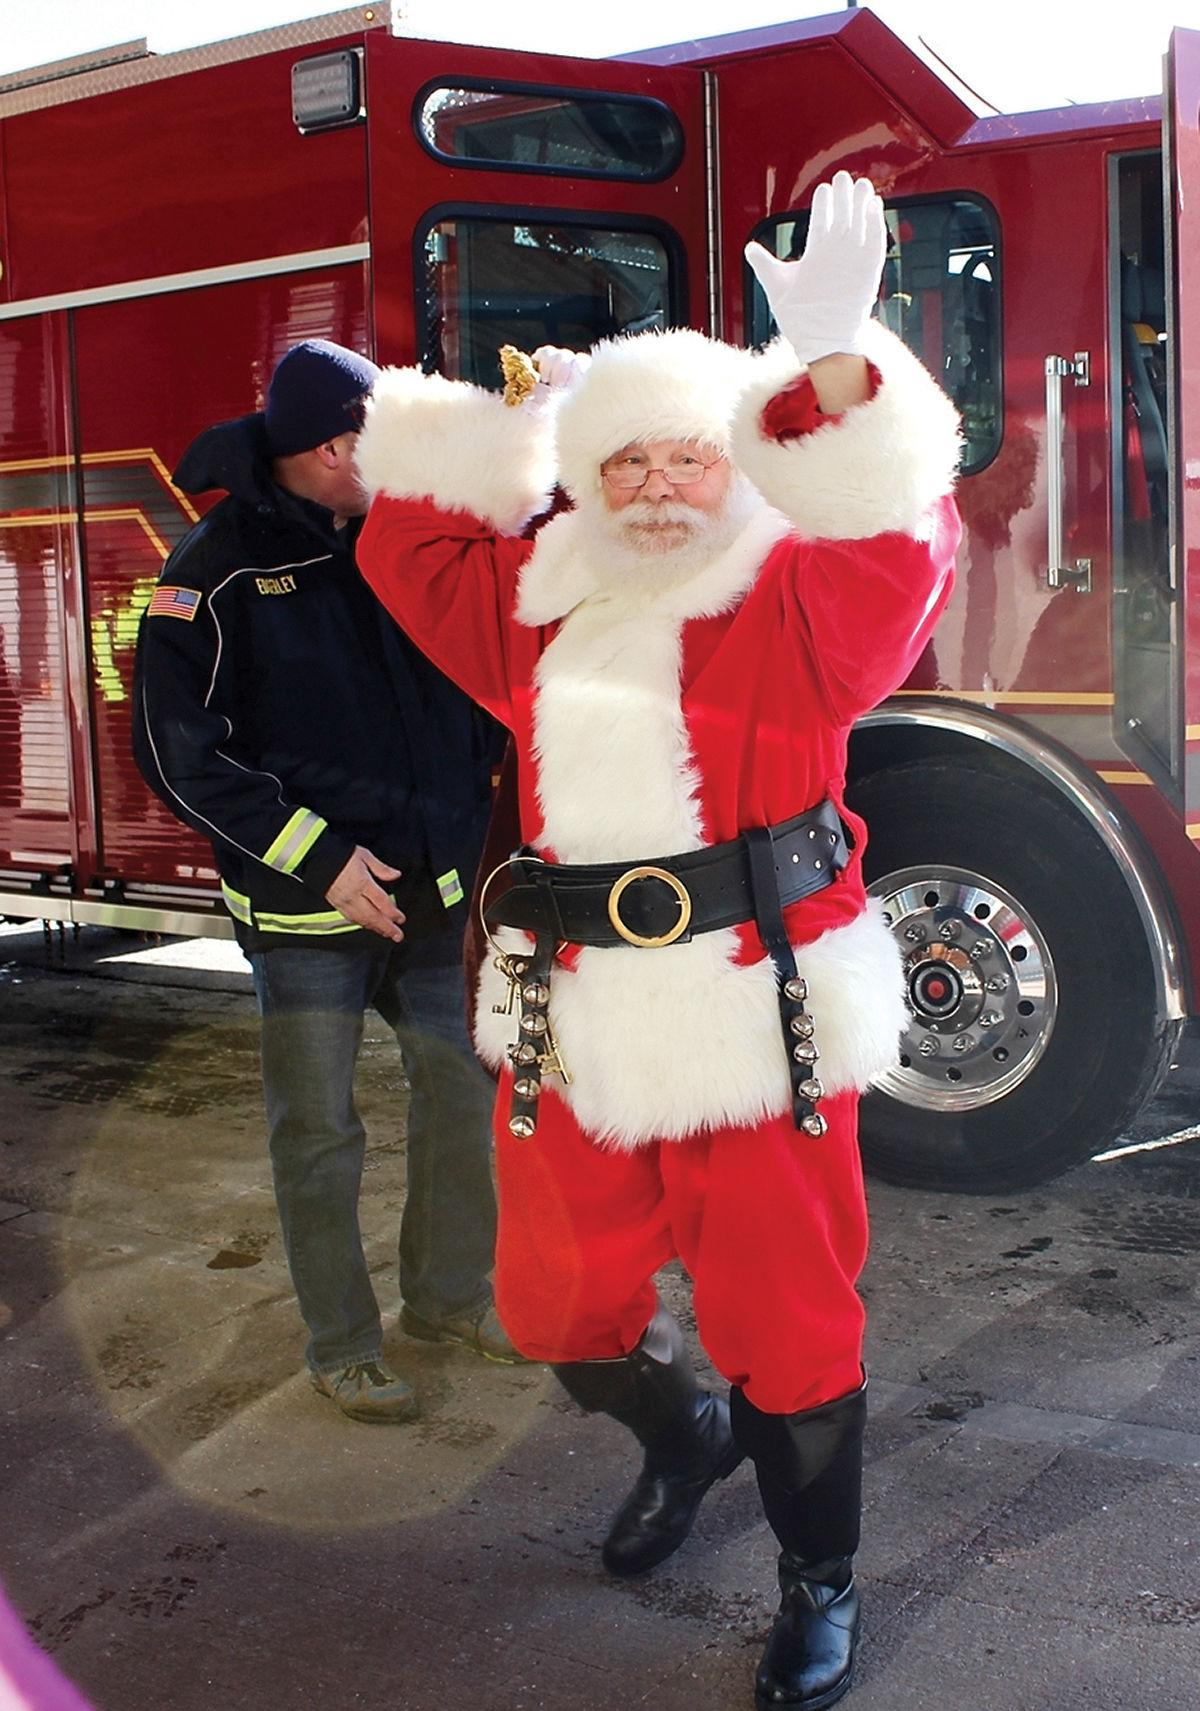 Santa dismounts a fire engine with a sack of toys for kids